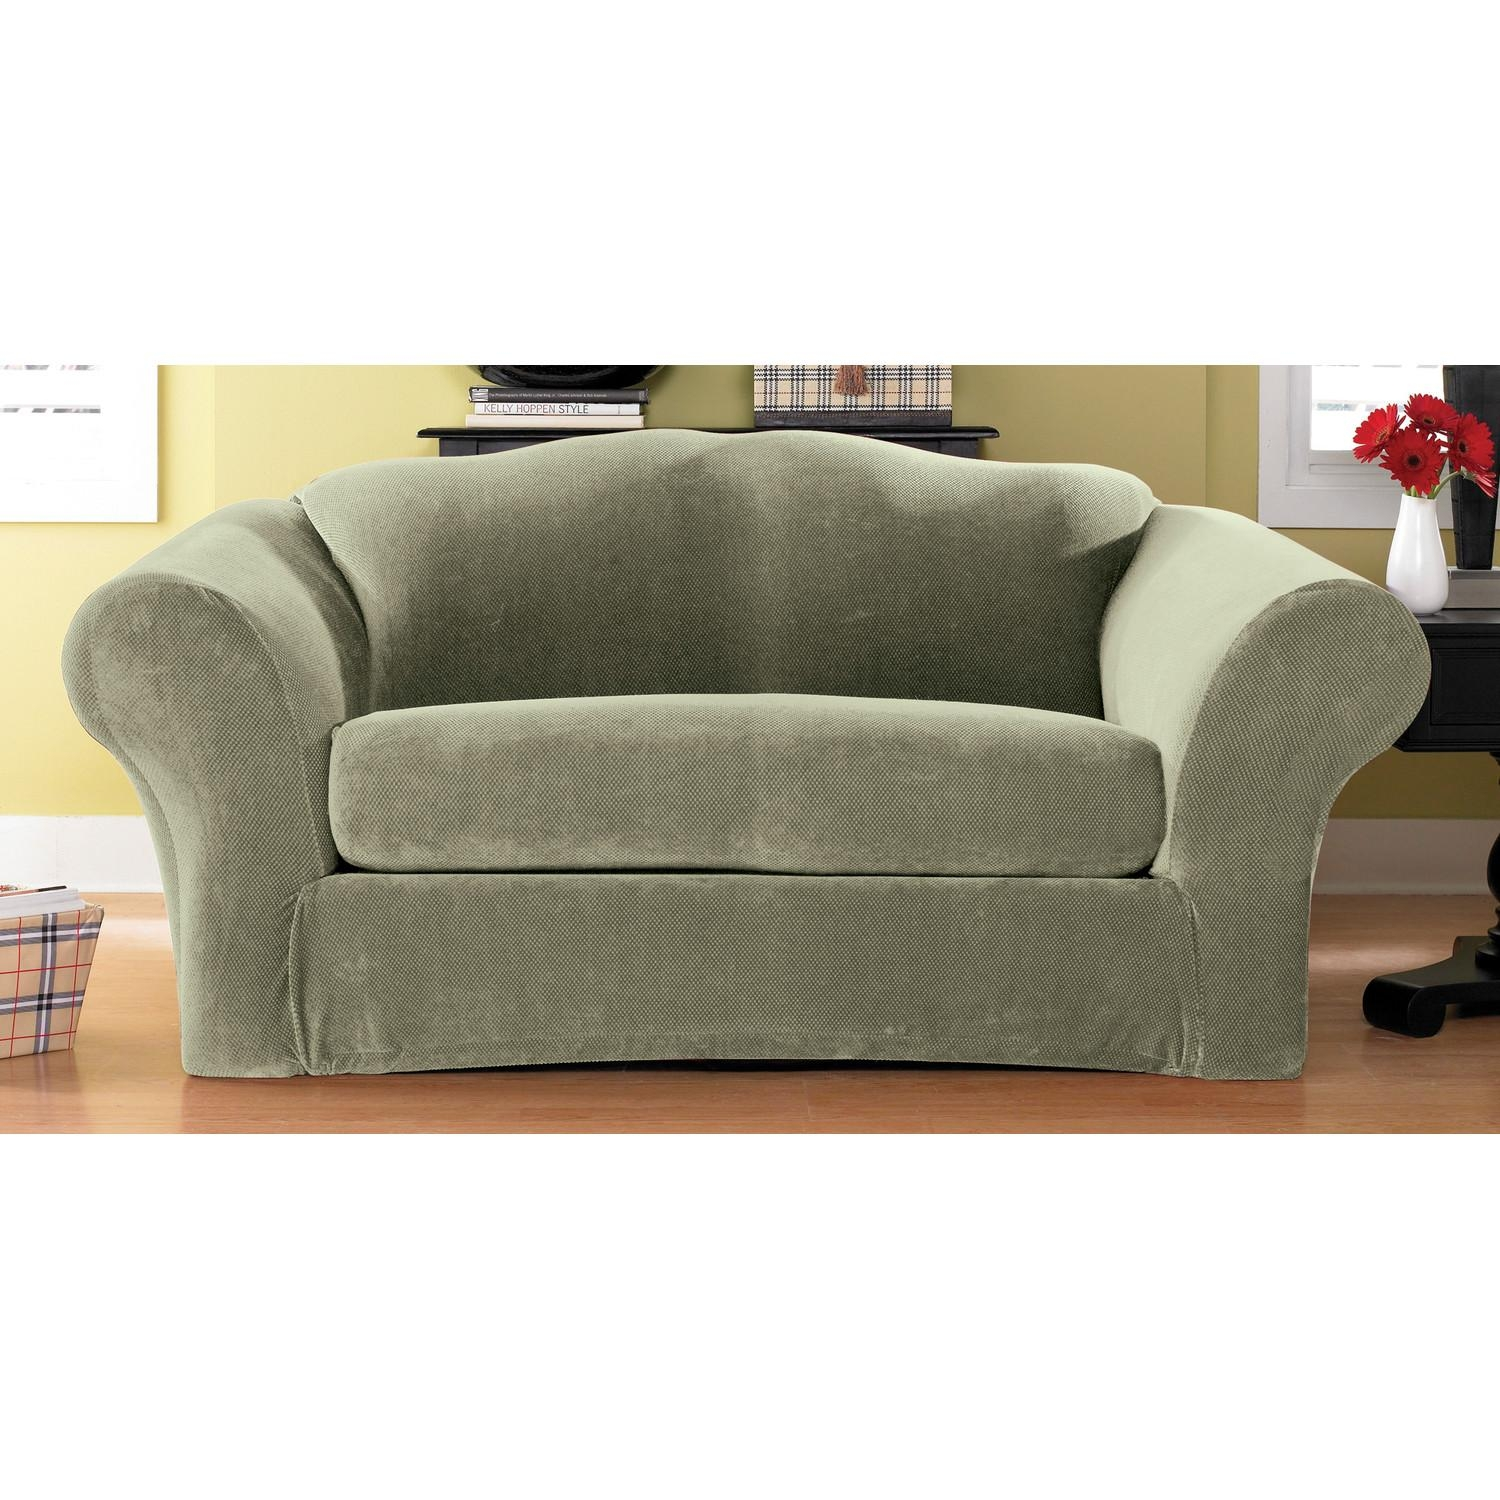 Decorating: Cozy Slipcovers For Sofas With Cushions Separate In Within Slipcover For Reclining Sofas (Image 2 of 20)